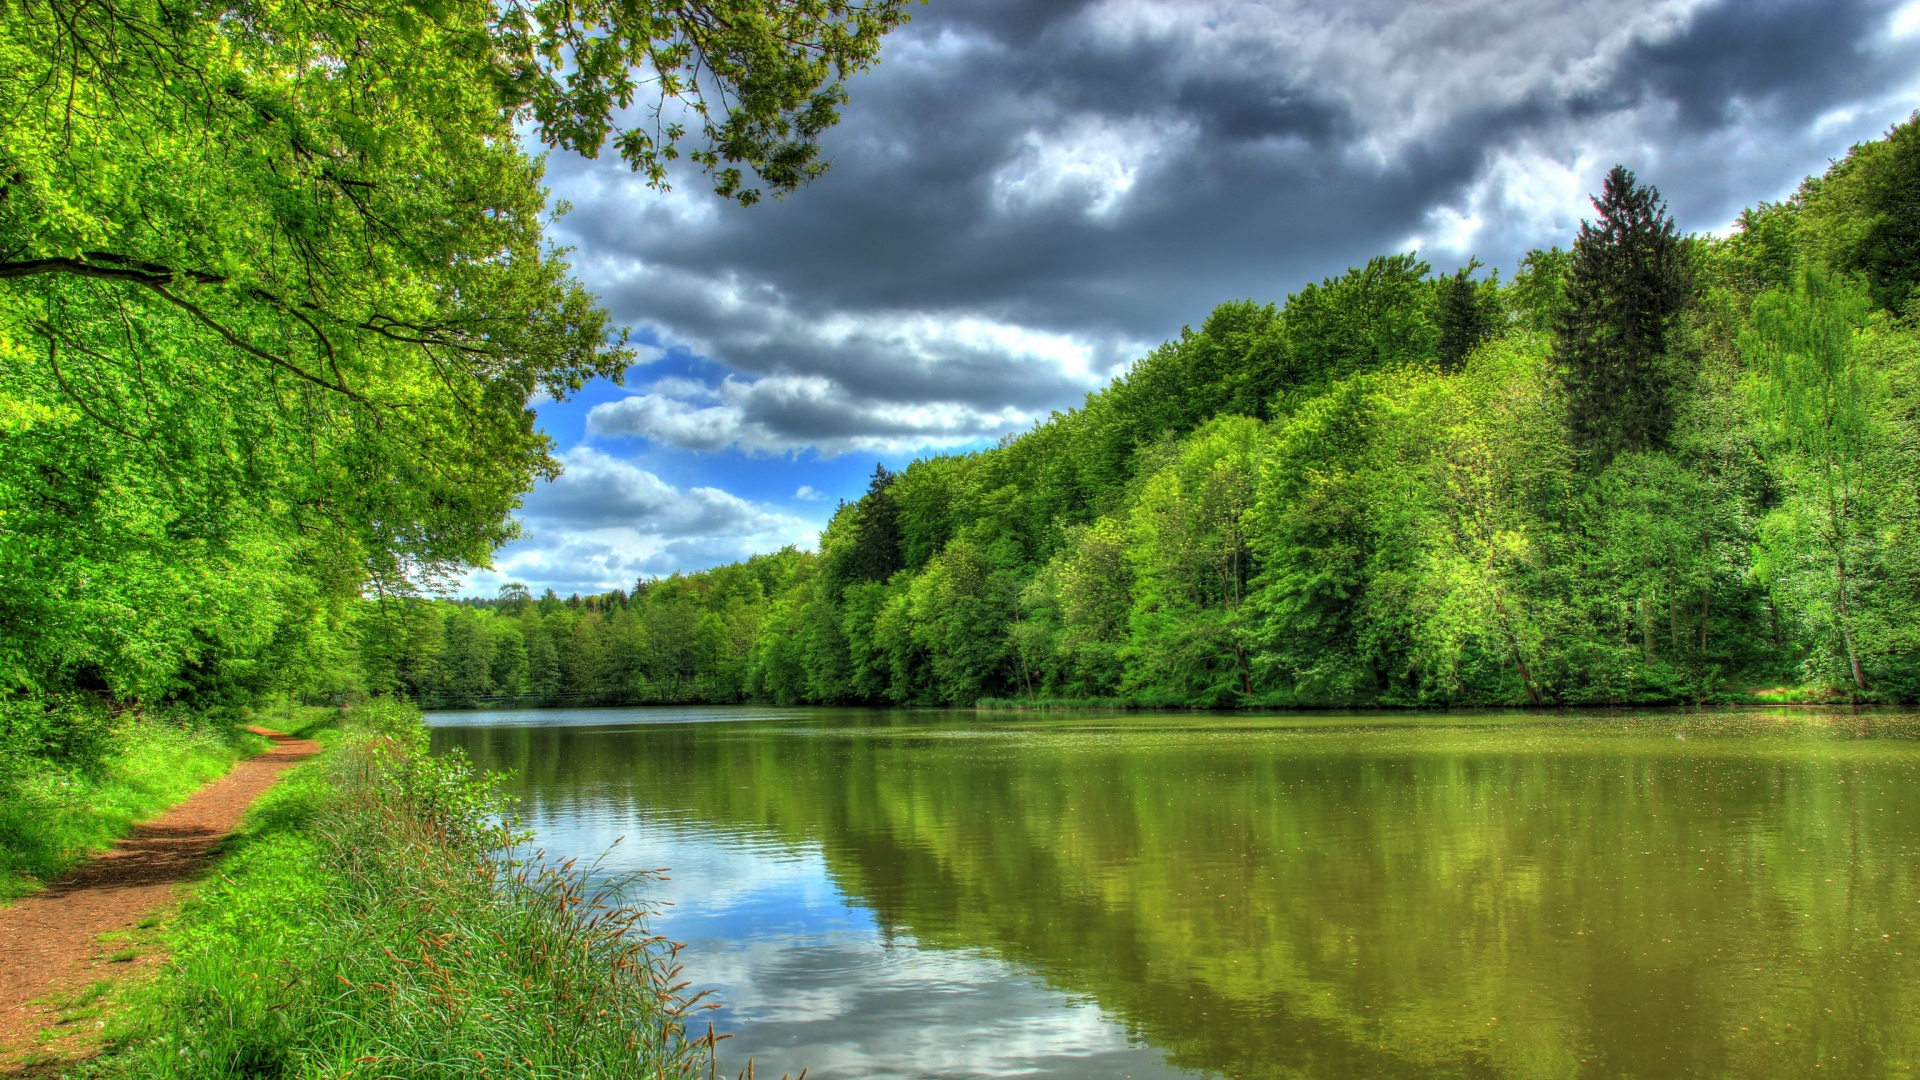 Summer Landscape Full Hd Wallpaper High Resolution: Download Wallpaper 1920x1080 River, Germany, Tropic